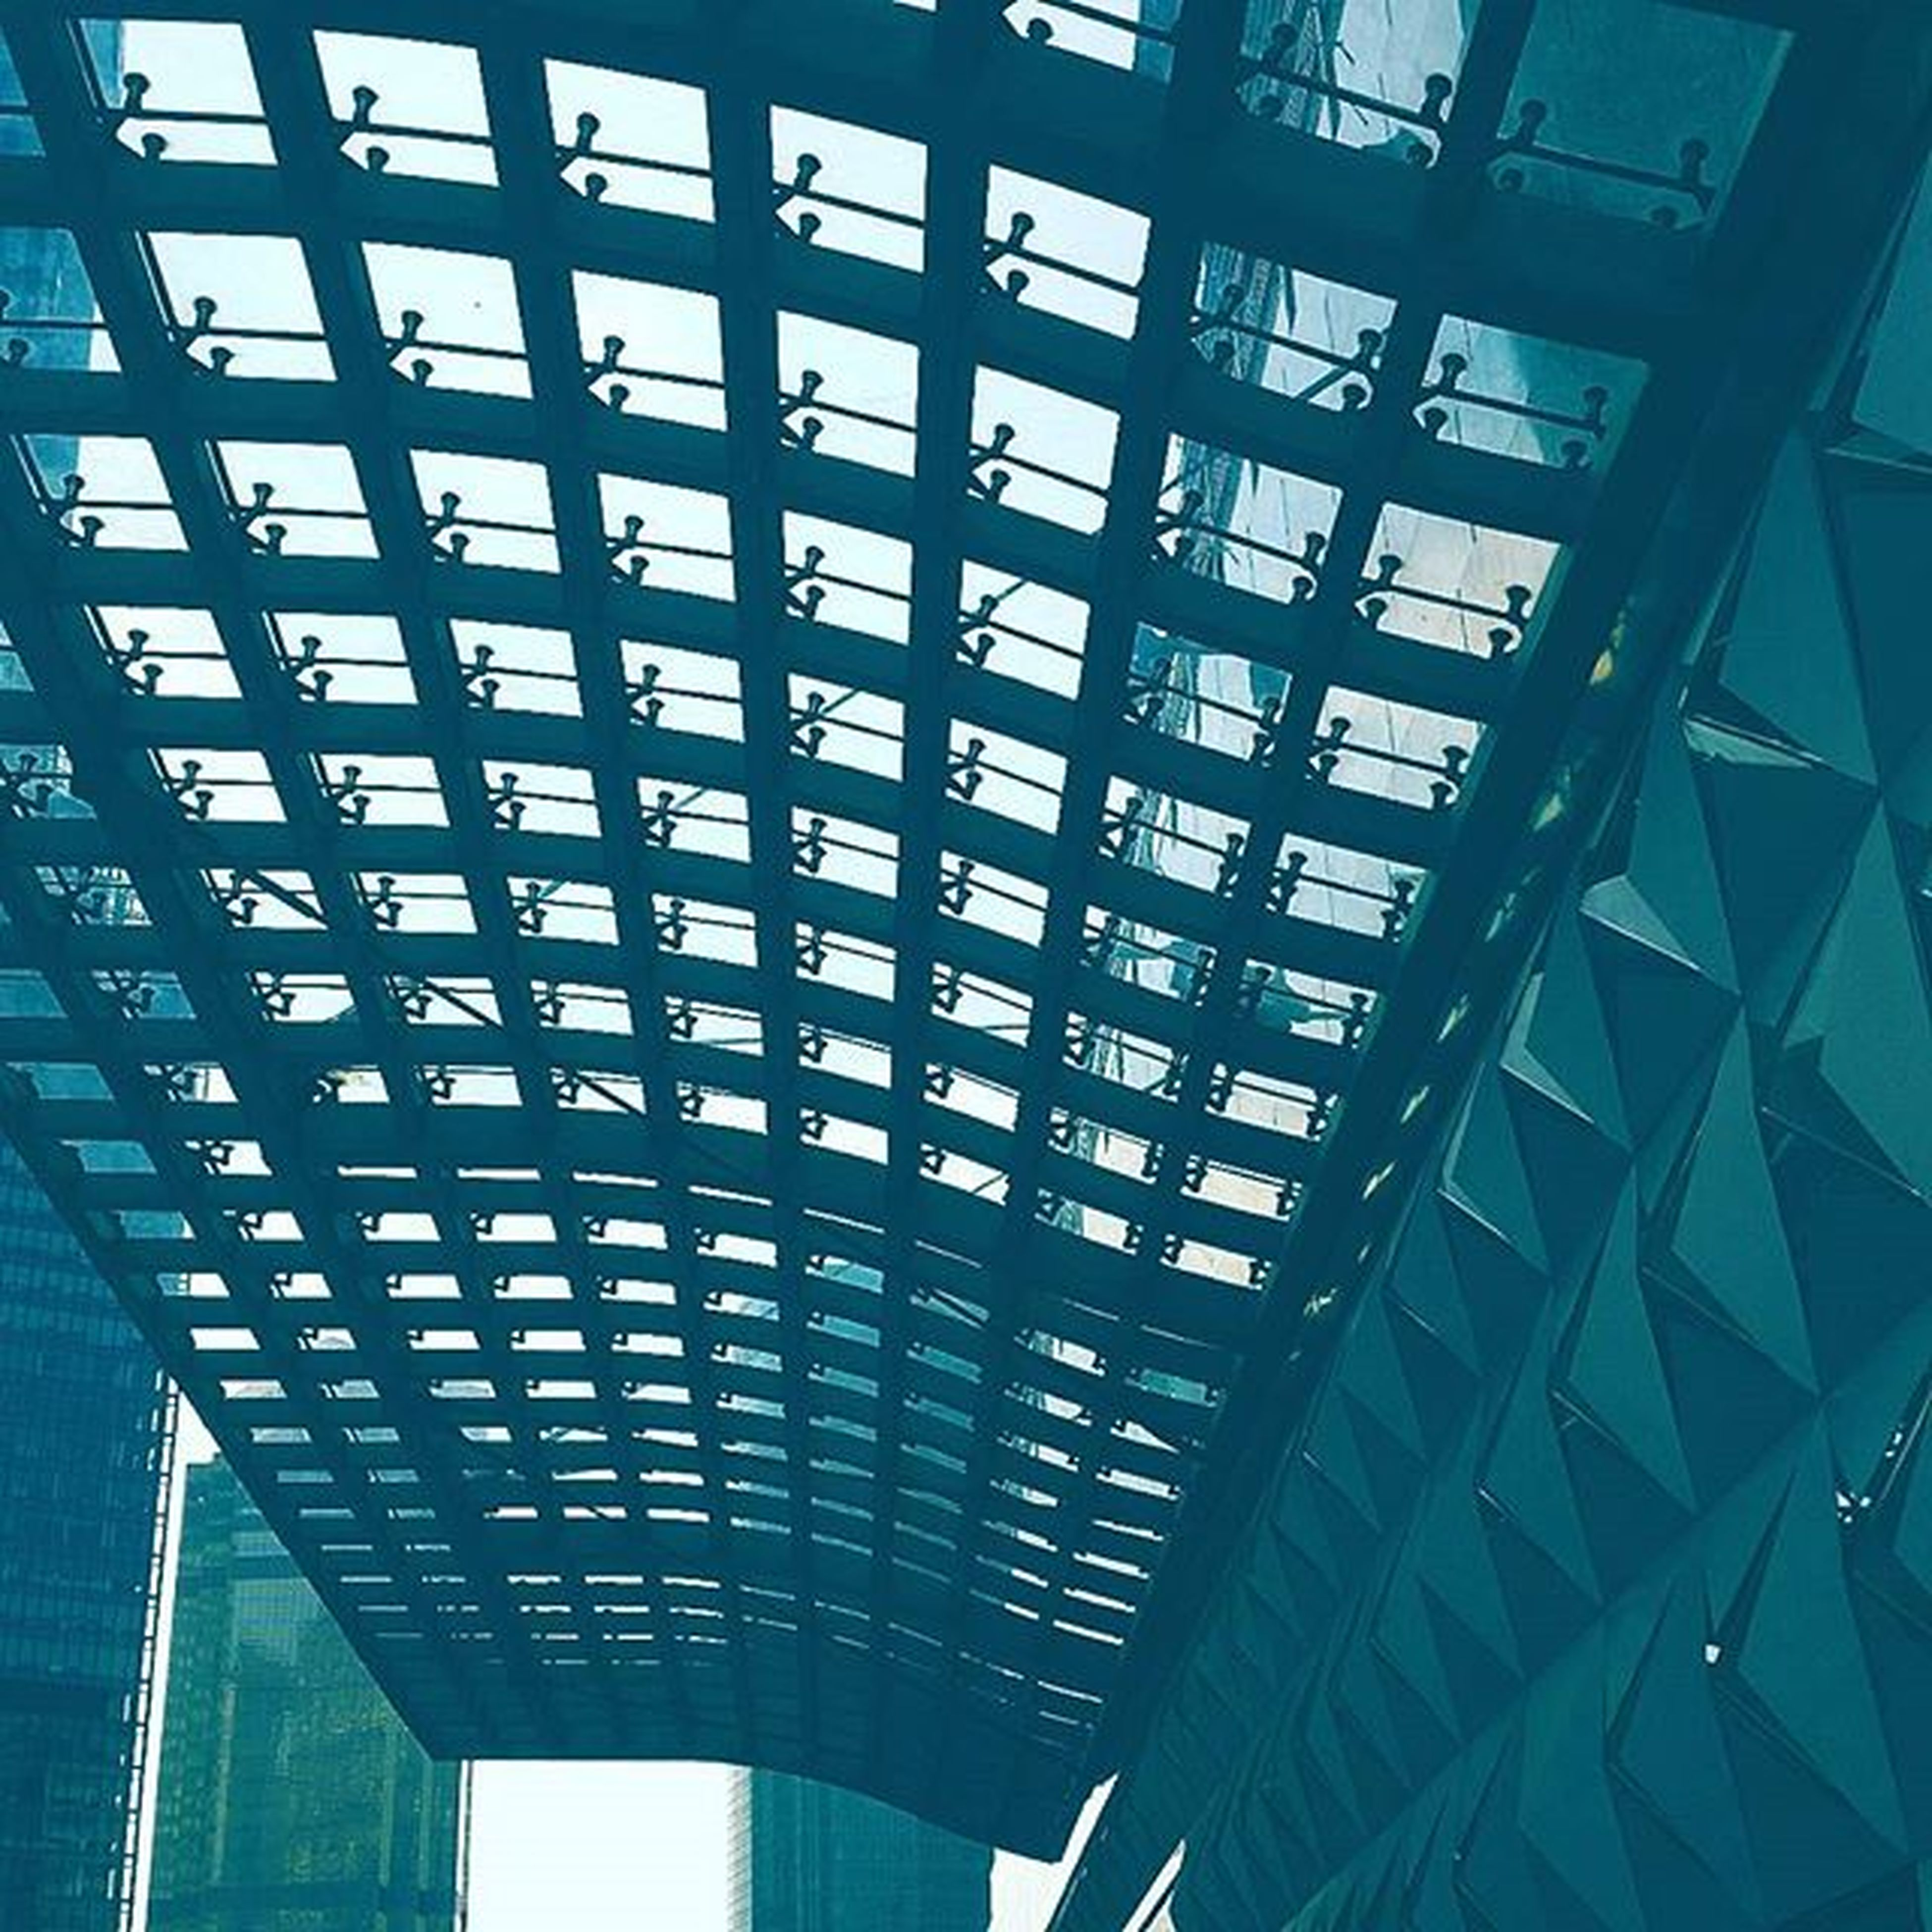 architecture, built structure, low angle view, indoors, ceiling, modern, pattern, architectural feature, glass - material, metal, no people, blue, day, grid, sky, connection, repetition, building exterior, sunlight, design